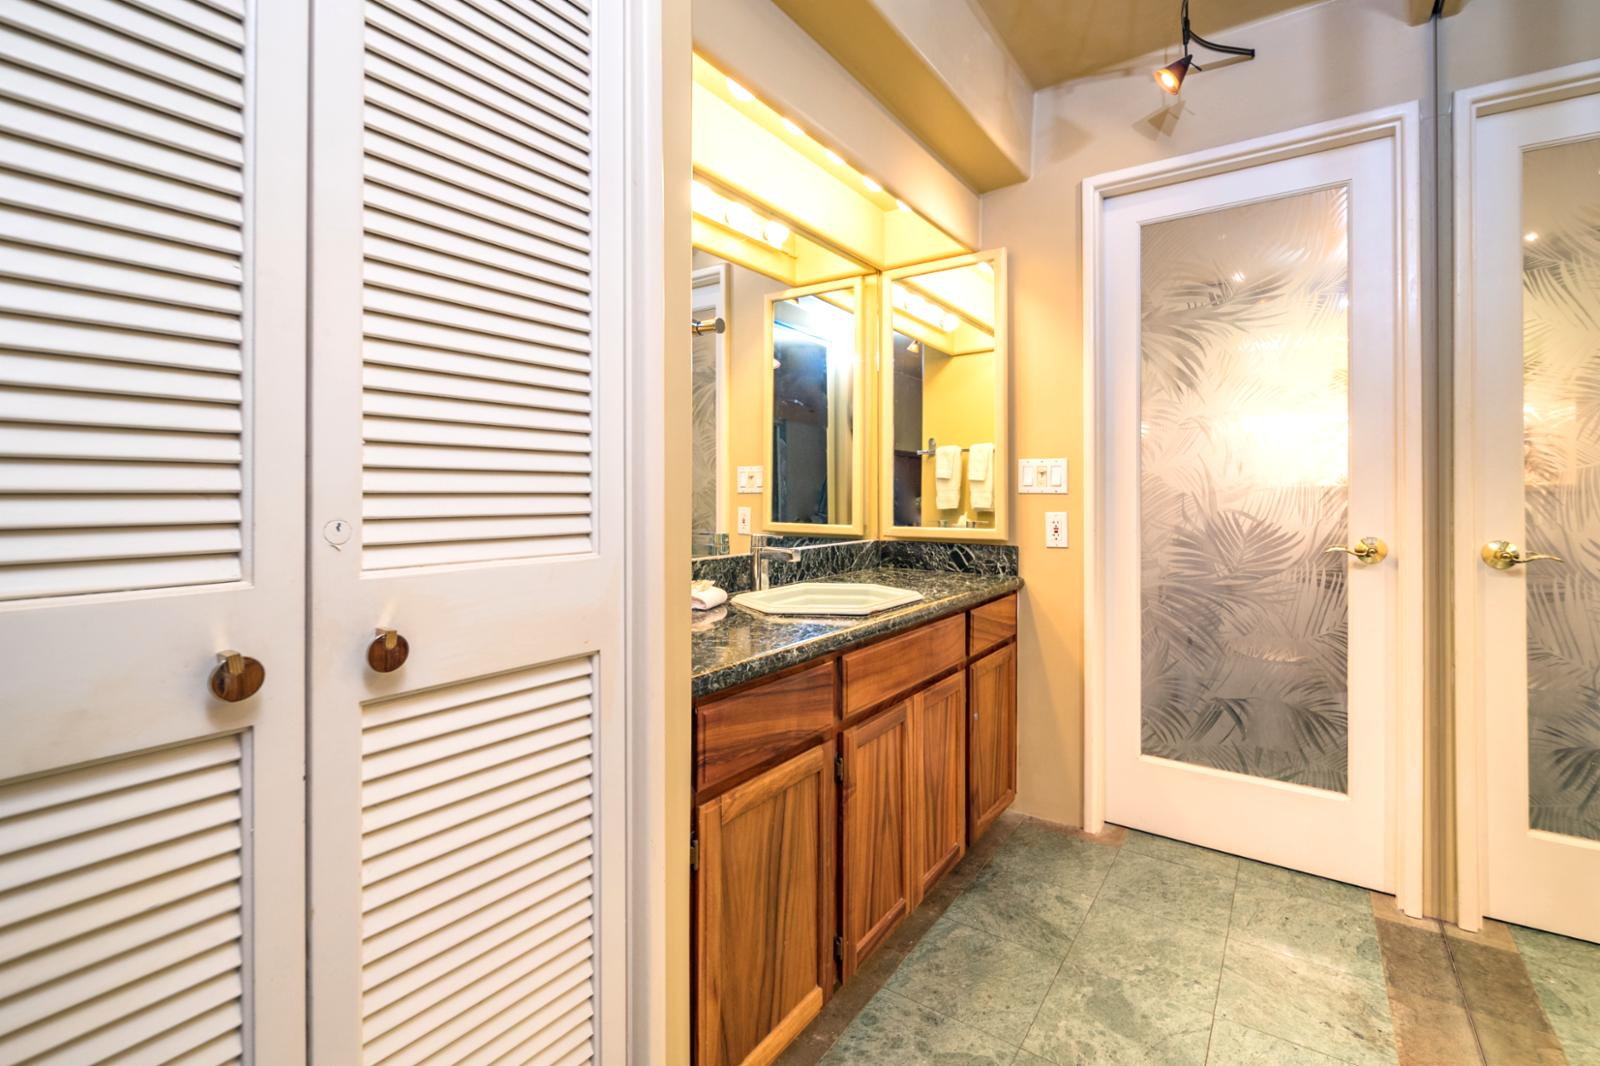 Private access to the en suite bathroom